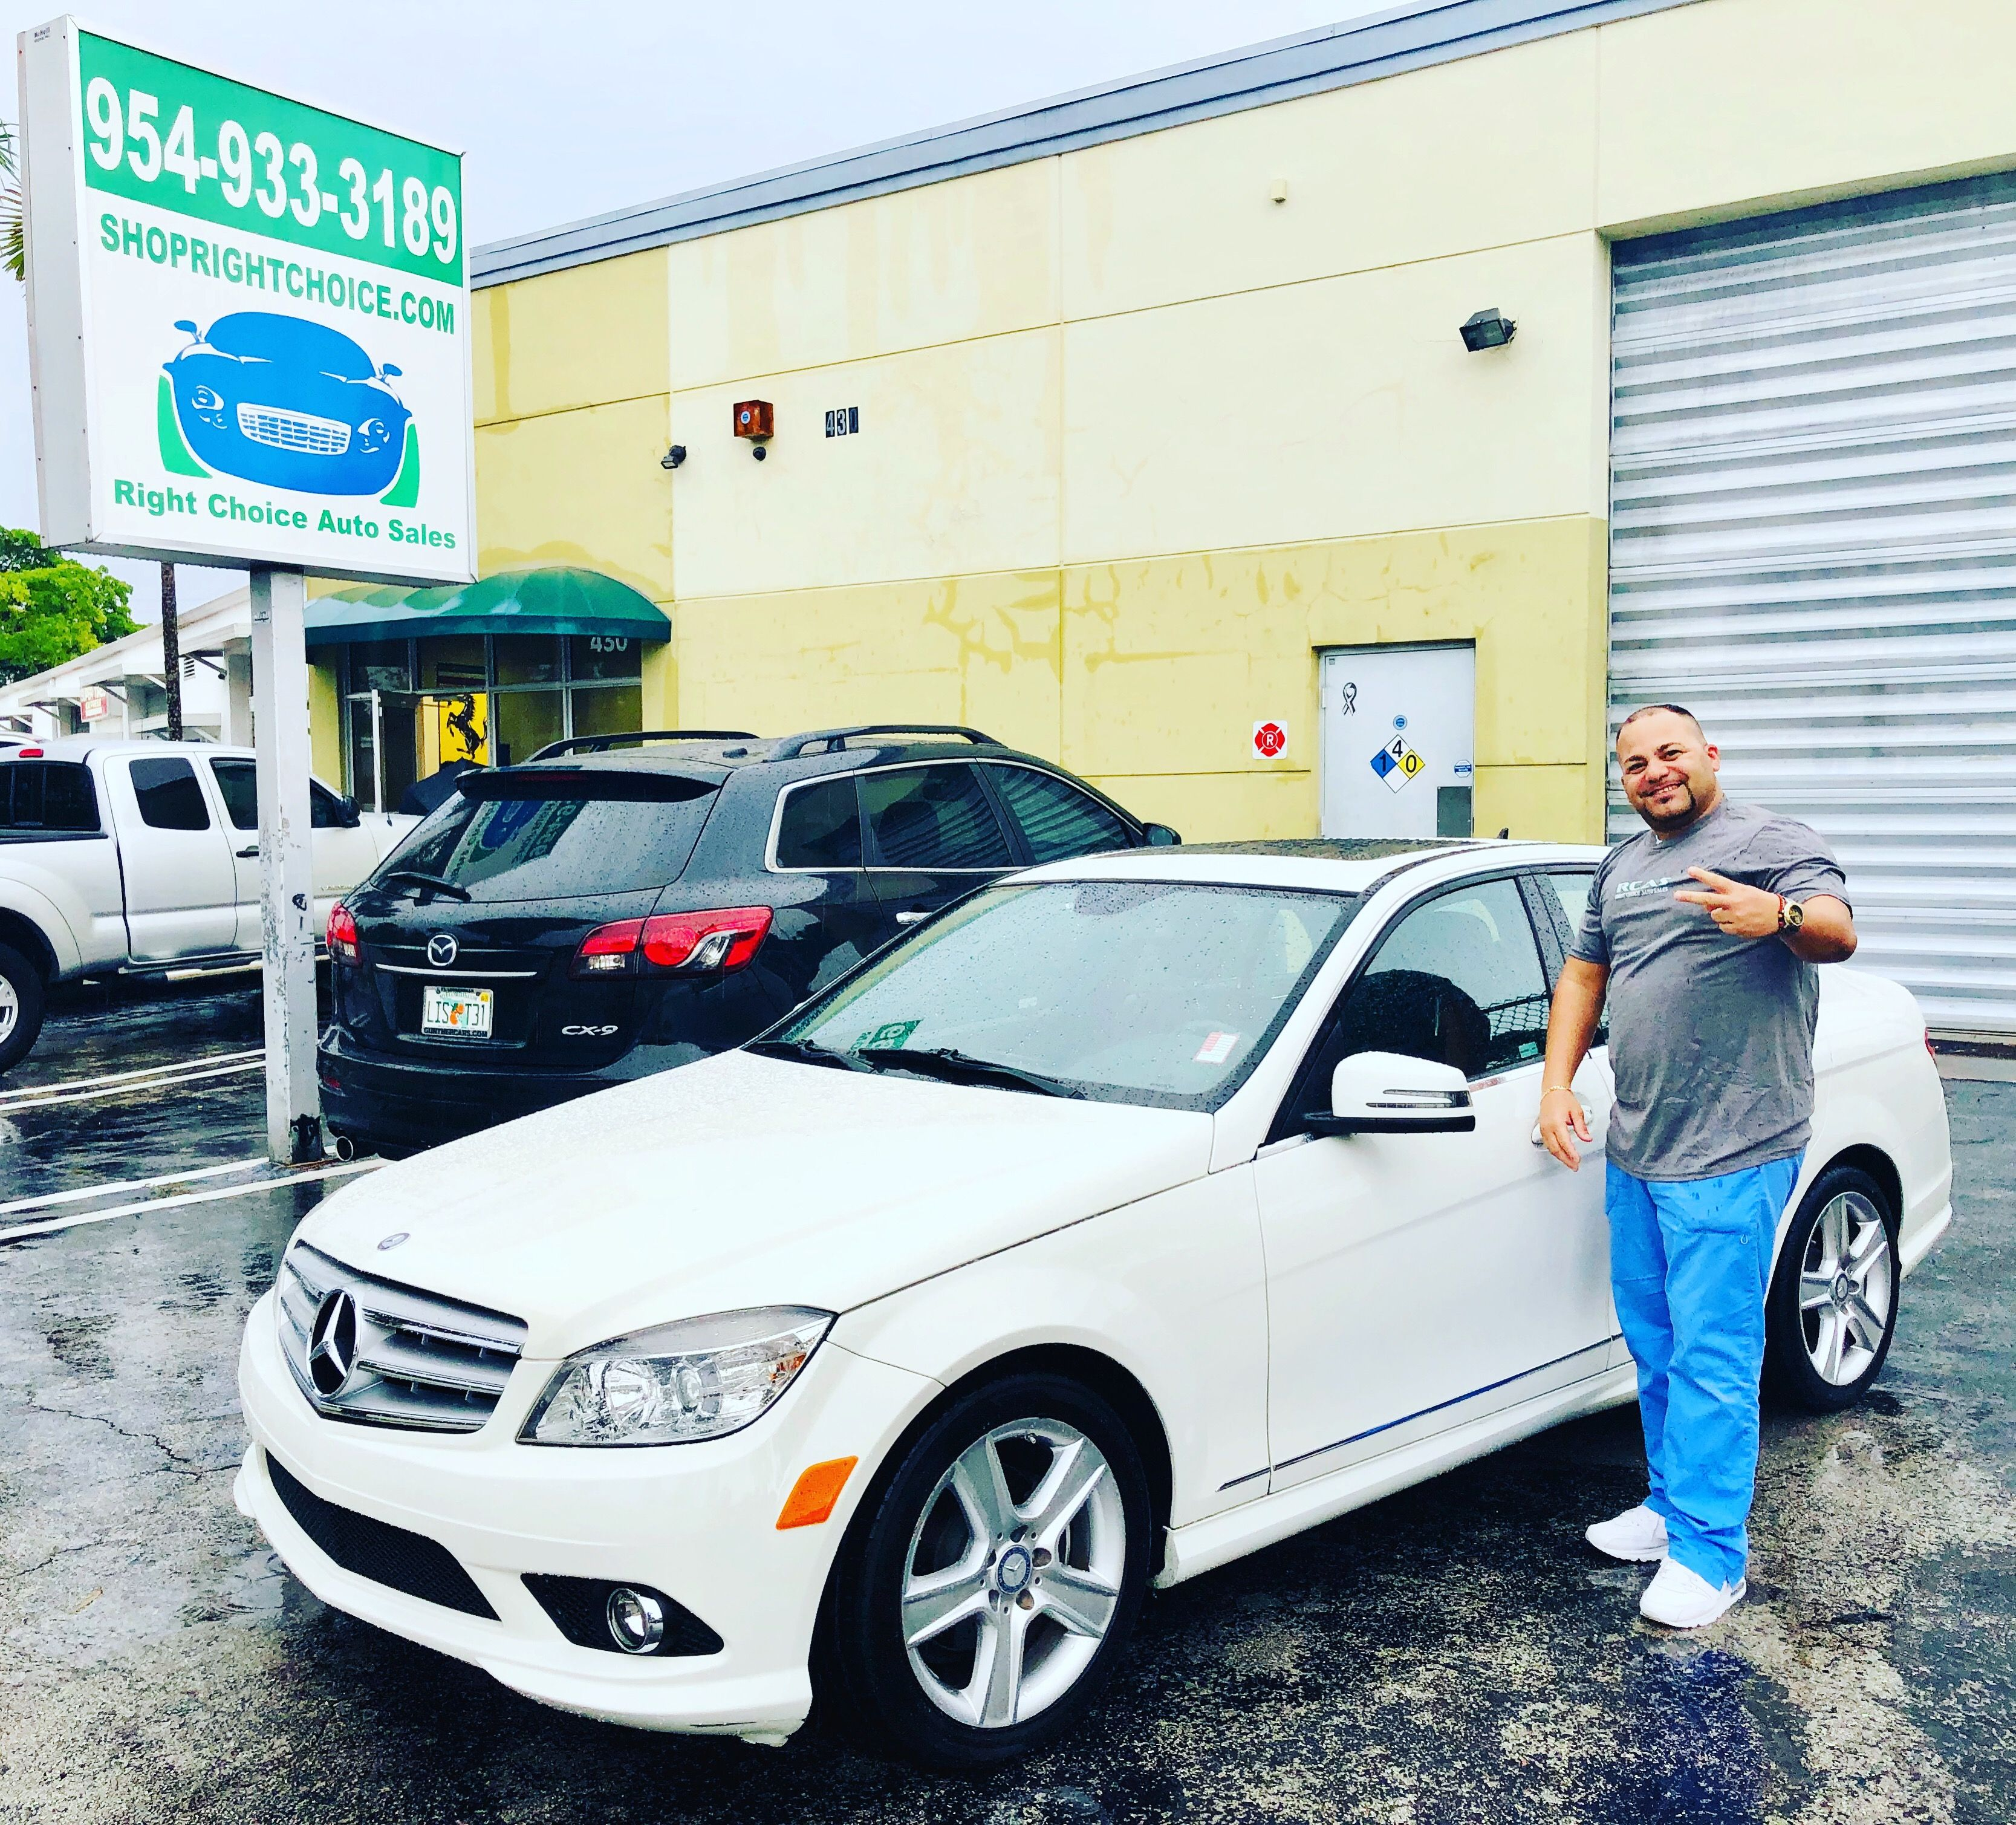 Another Happy Customer Who Saved Over 1 900 On This Like New 2010 Mercedes Benz C300 With Only 50k Mi Cars For Sale Mercedes Benz